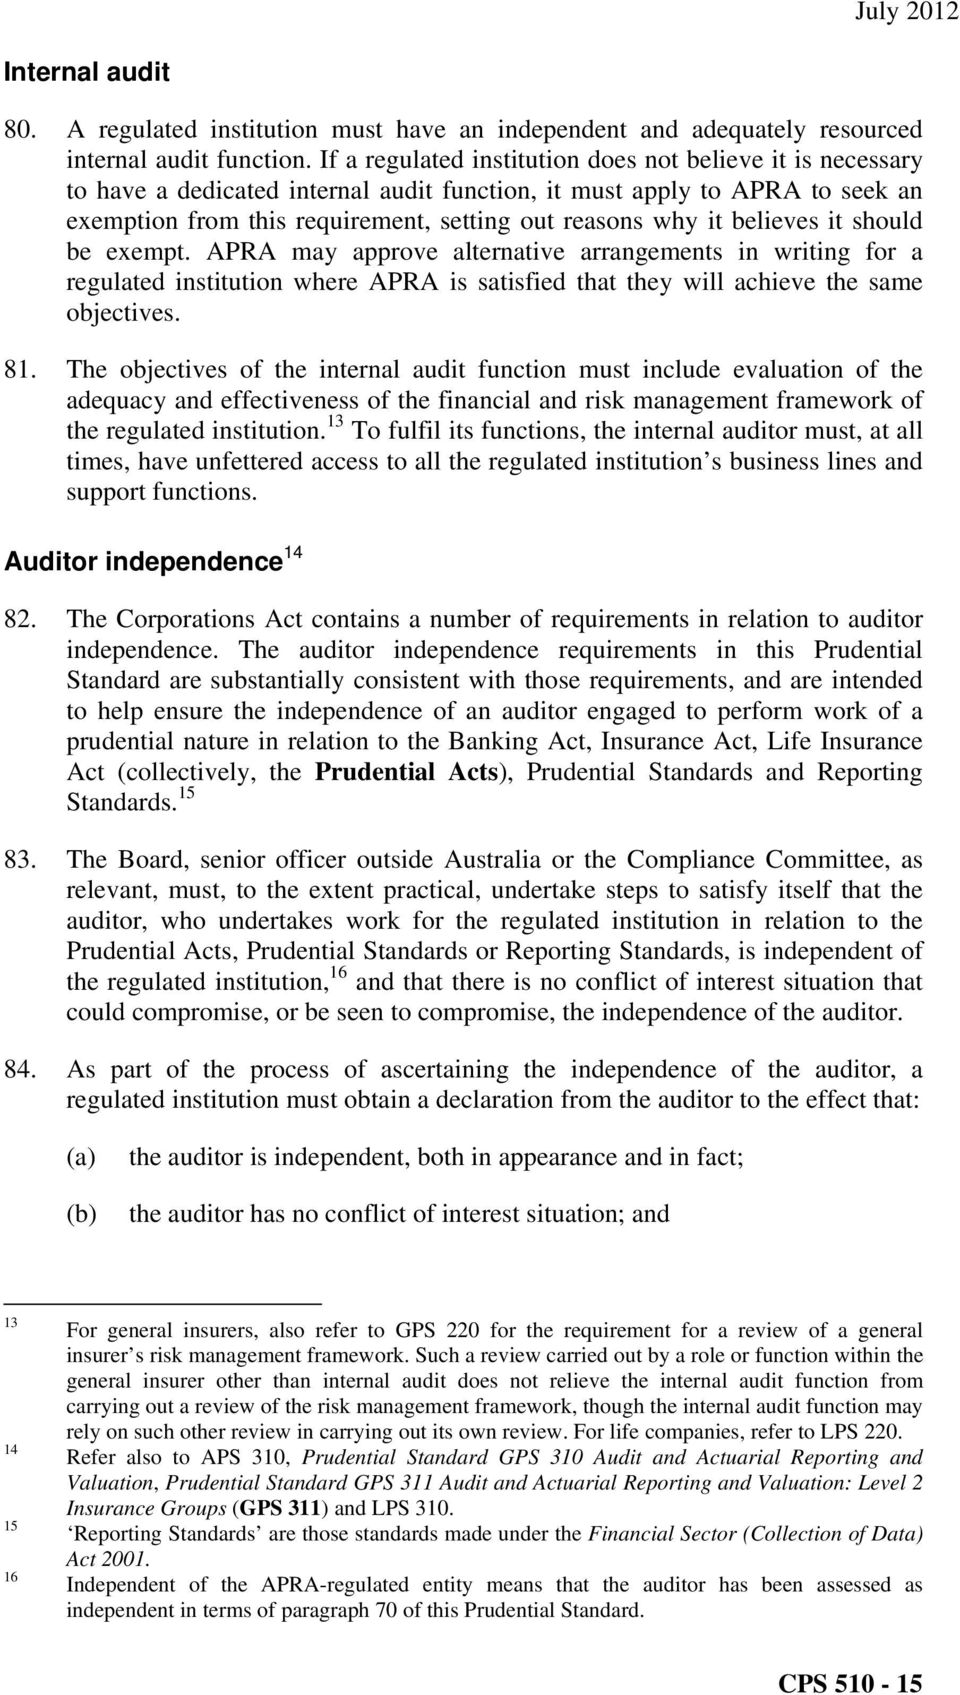 believes it should be exempt. APRA may approve alternative arrangements in writing for a regulated institution where APRA is satisfied that they will achieve the same objectives. 81.